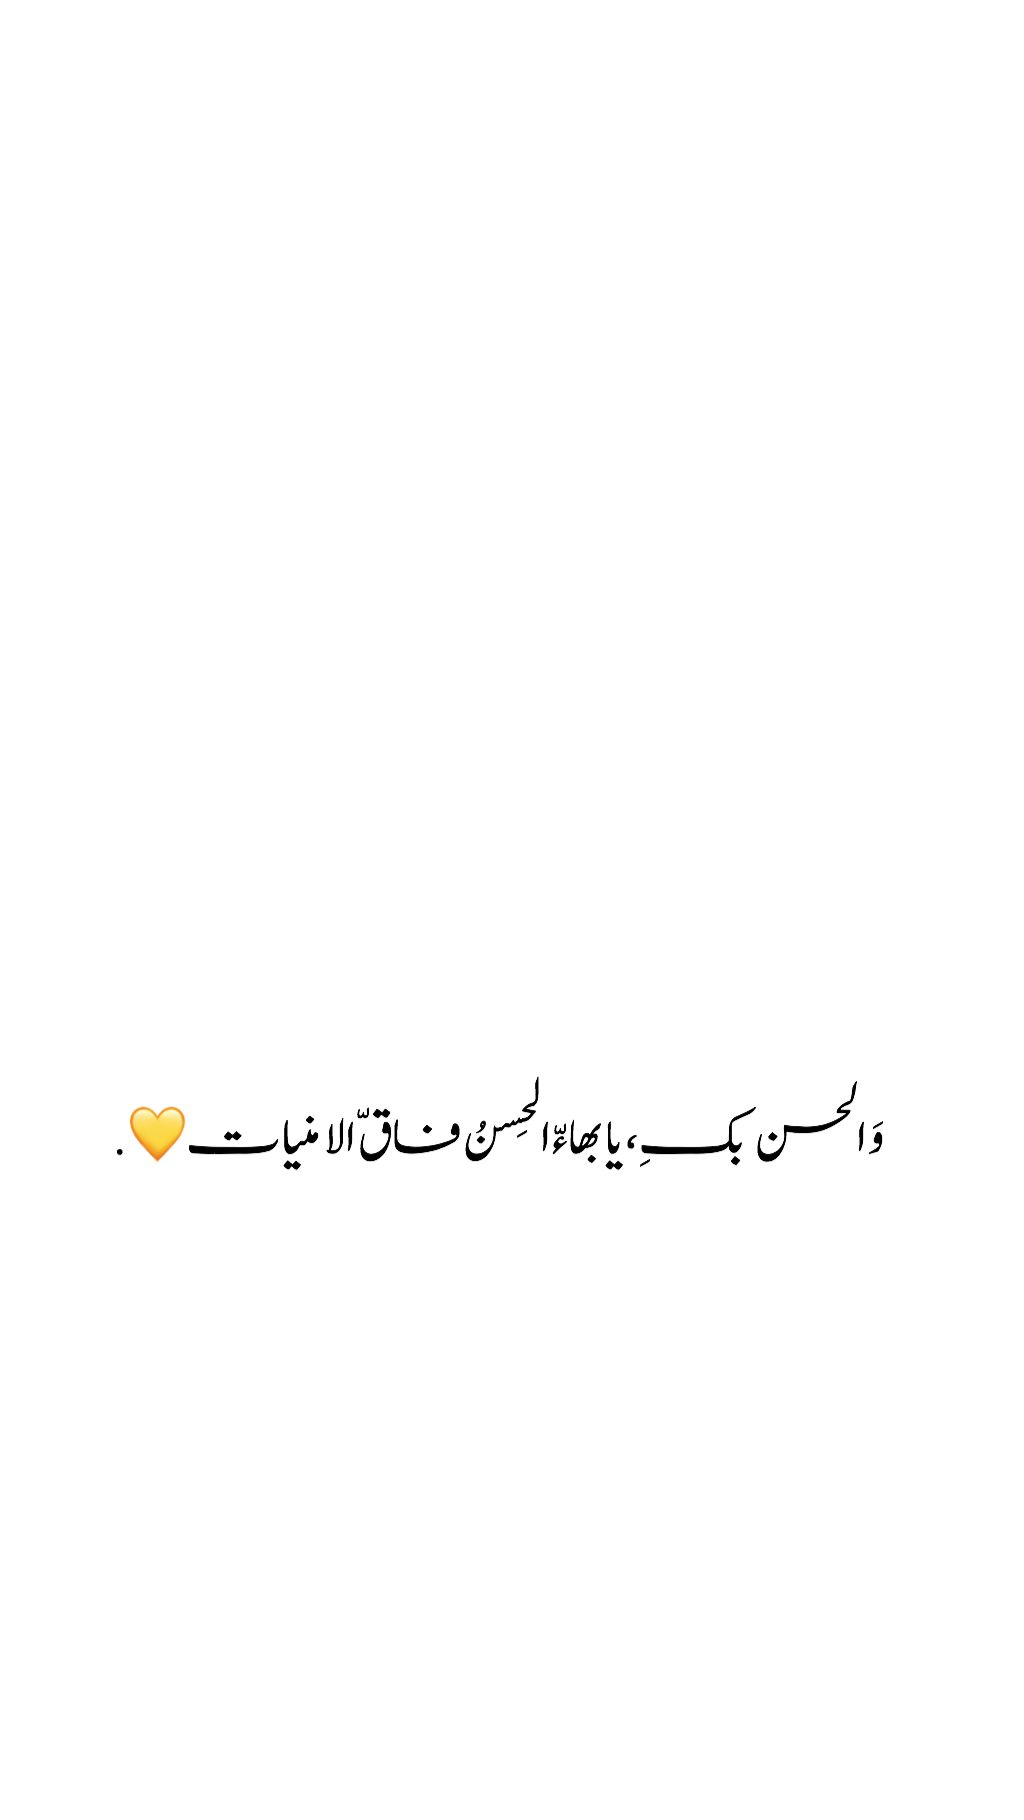 Twitter Smai9x Words Quotes Iphone Wallpaper Quotes Love Beautiful Arabic Words